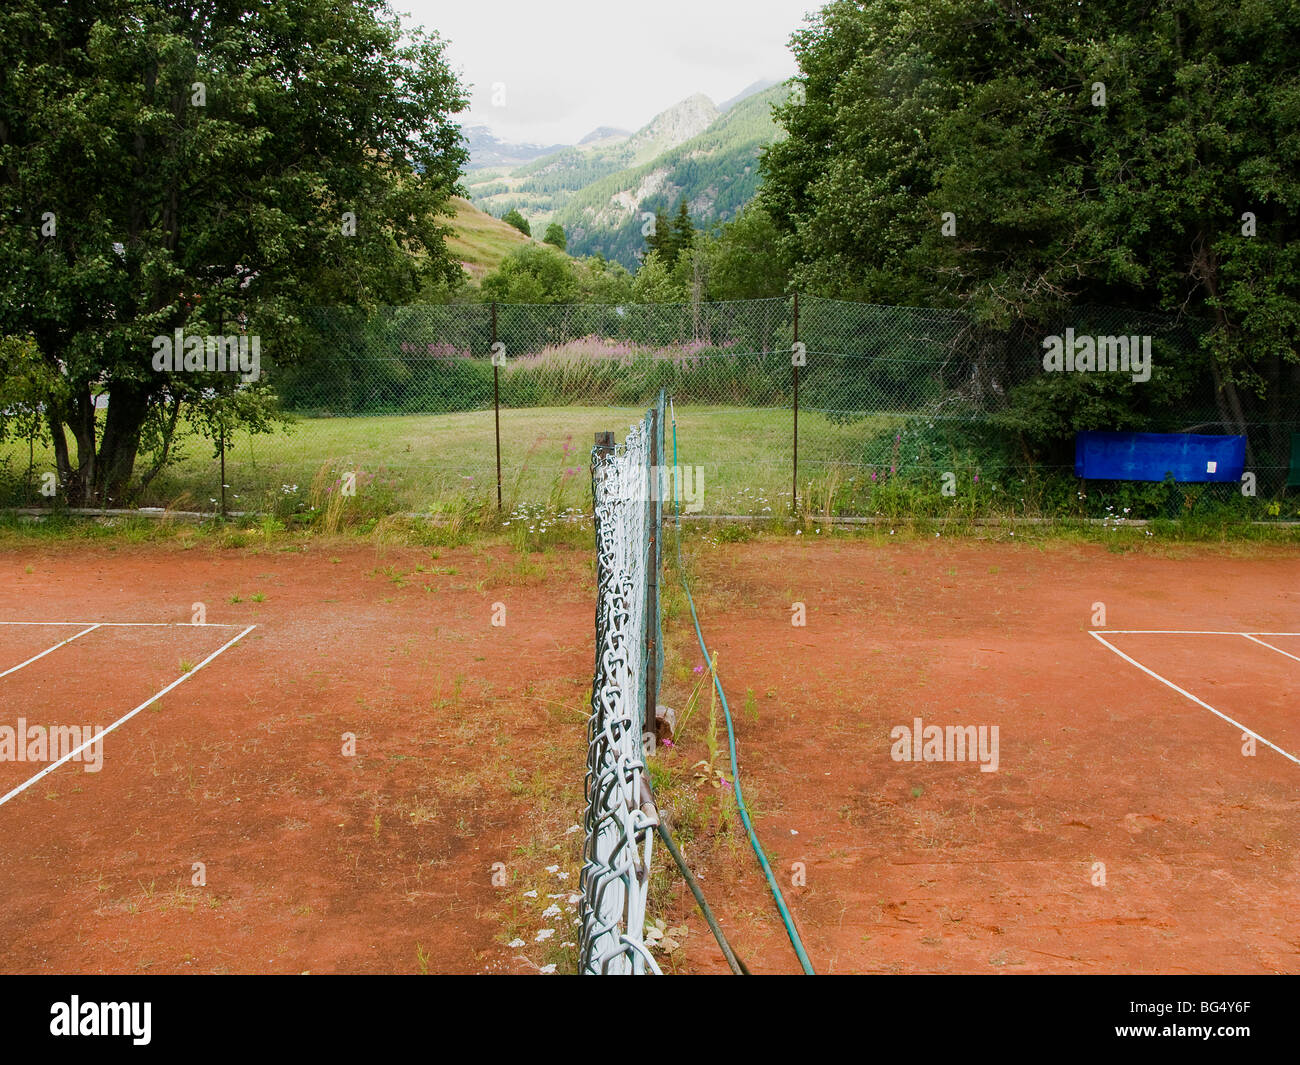 tennis abandonment old neglected abandoned discontinued row rows red earth sports weeds Val D'Aosta Italy Alpes - Stock Image